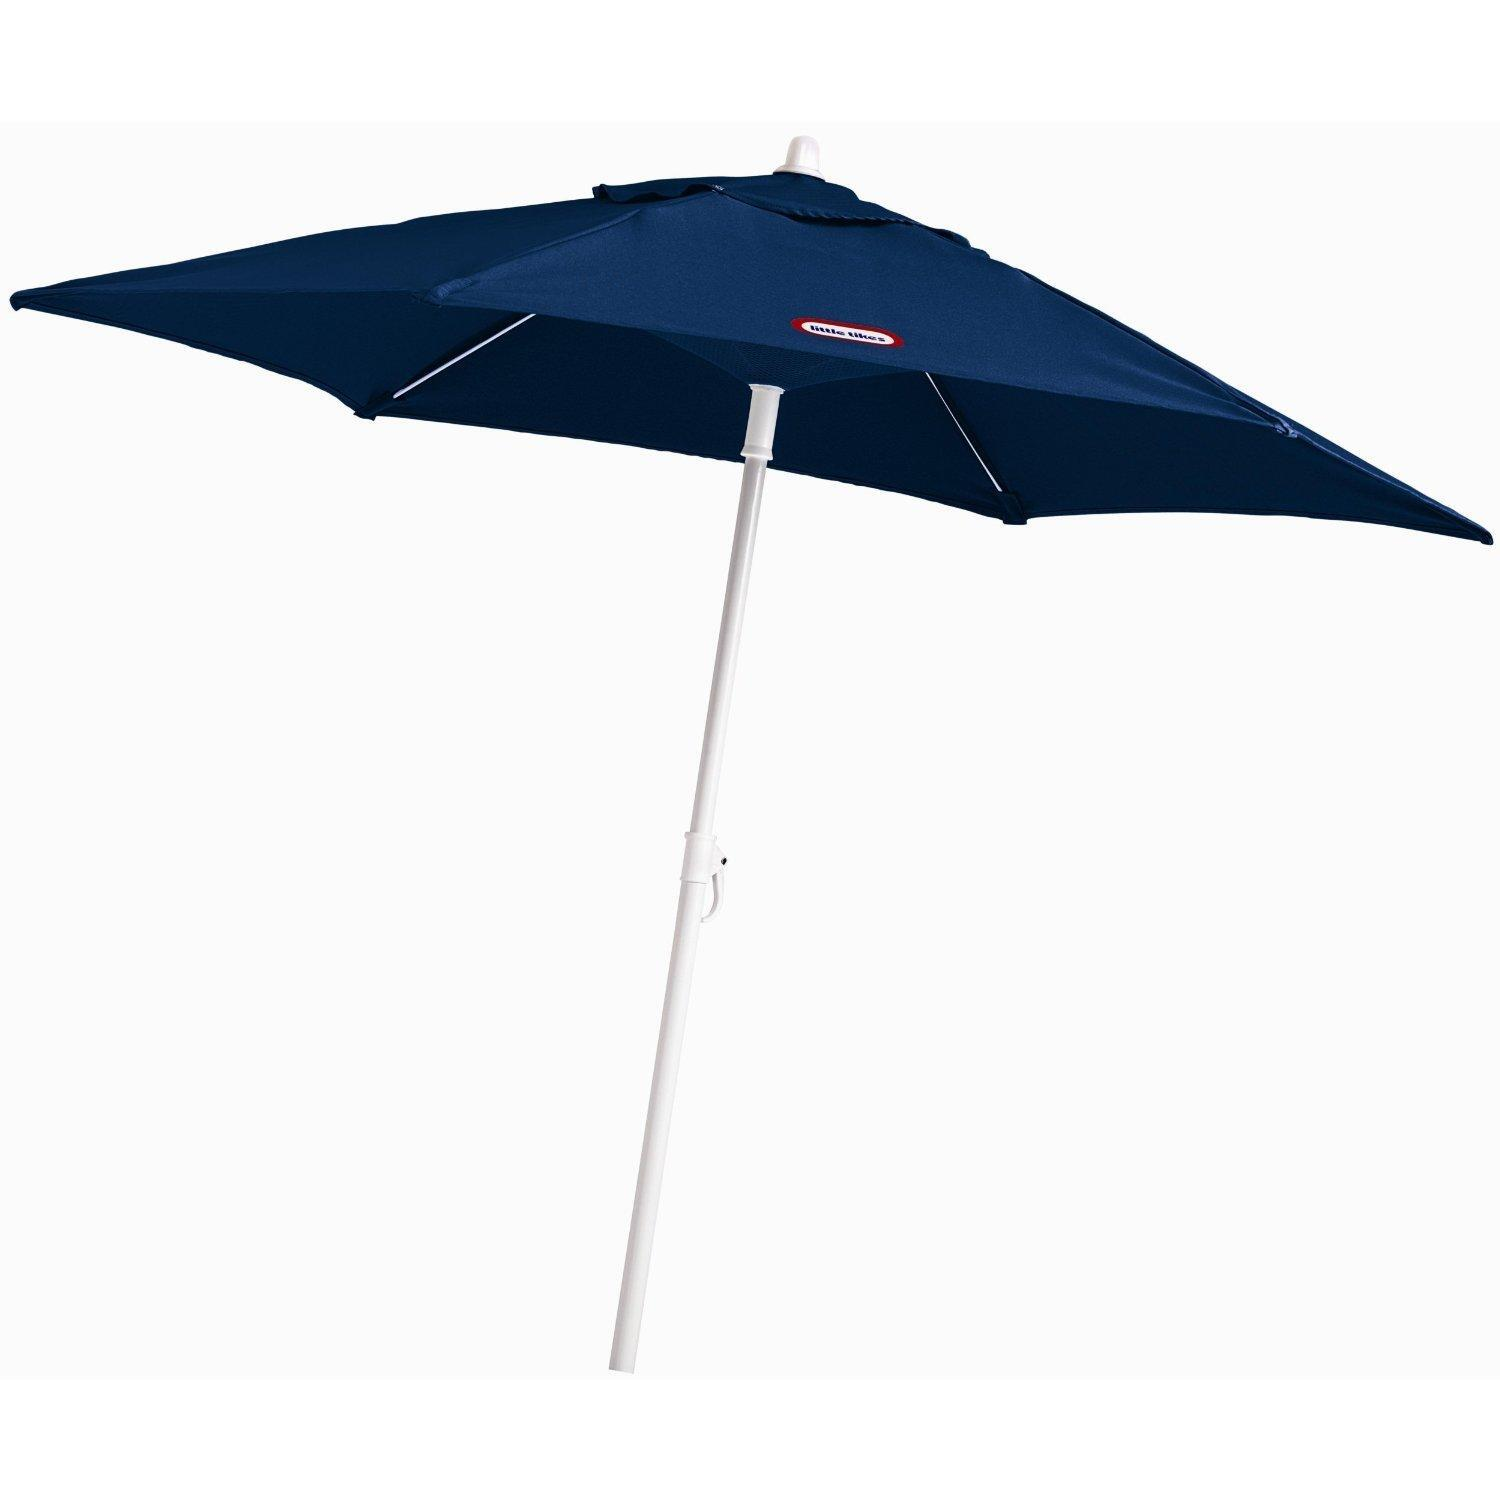 Umbrella For Picnic Table : Little Tikes Market Umbrella by OJ Commerce 750920077 - $27.99